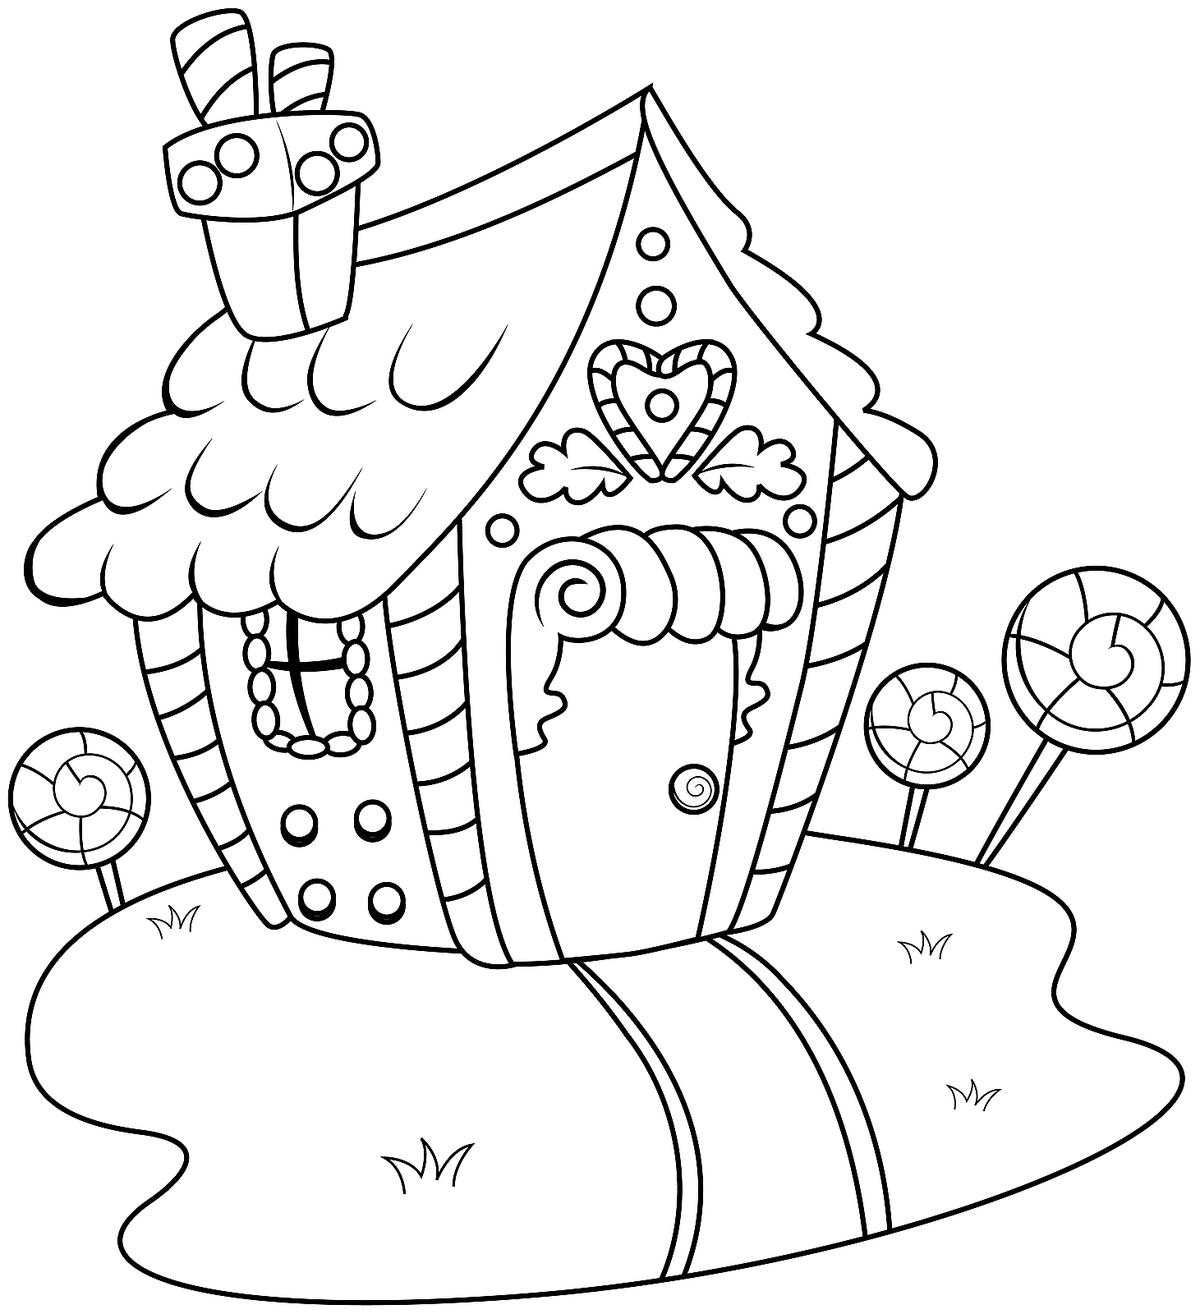 Gingerbread Coloring Pages Gingerbread House Coloring Pages Printable Coloring Activity